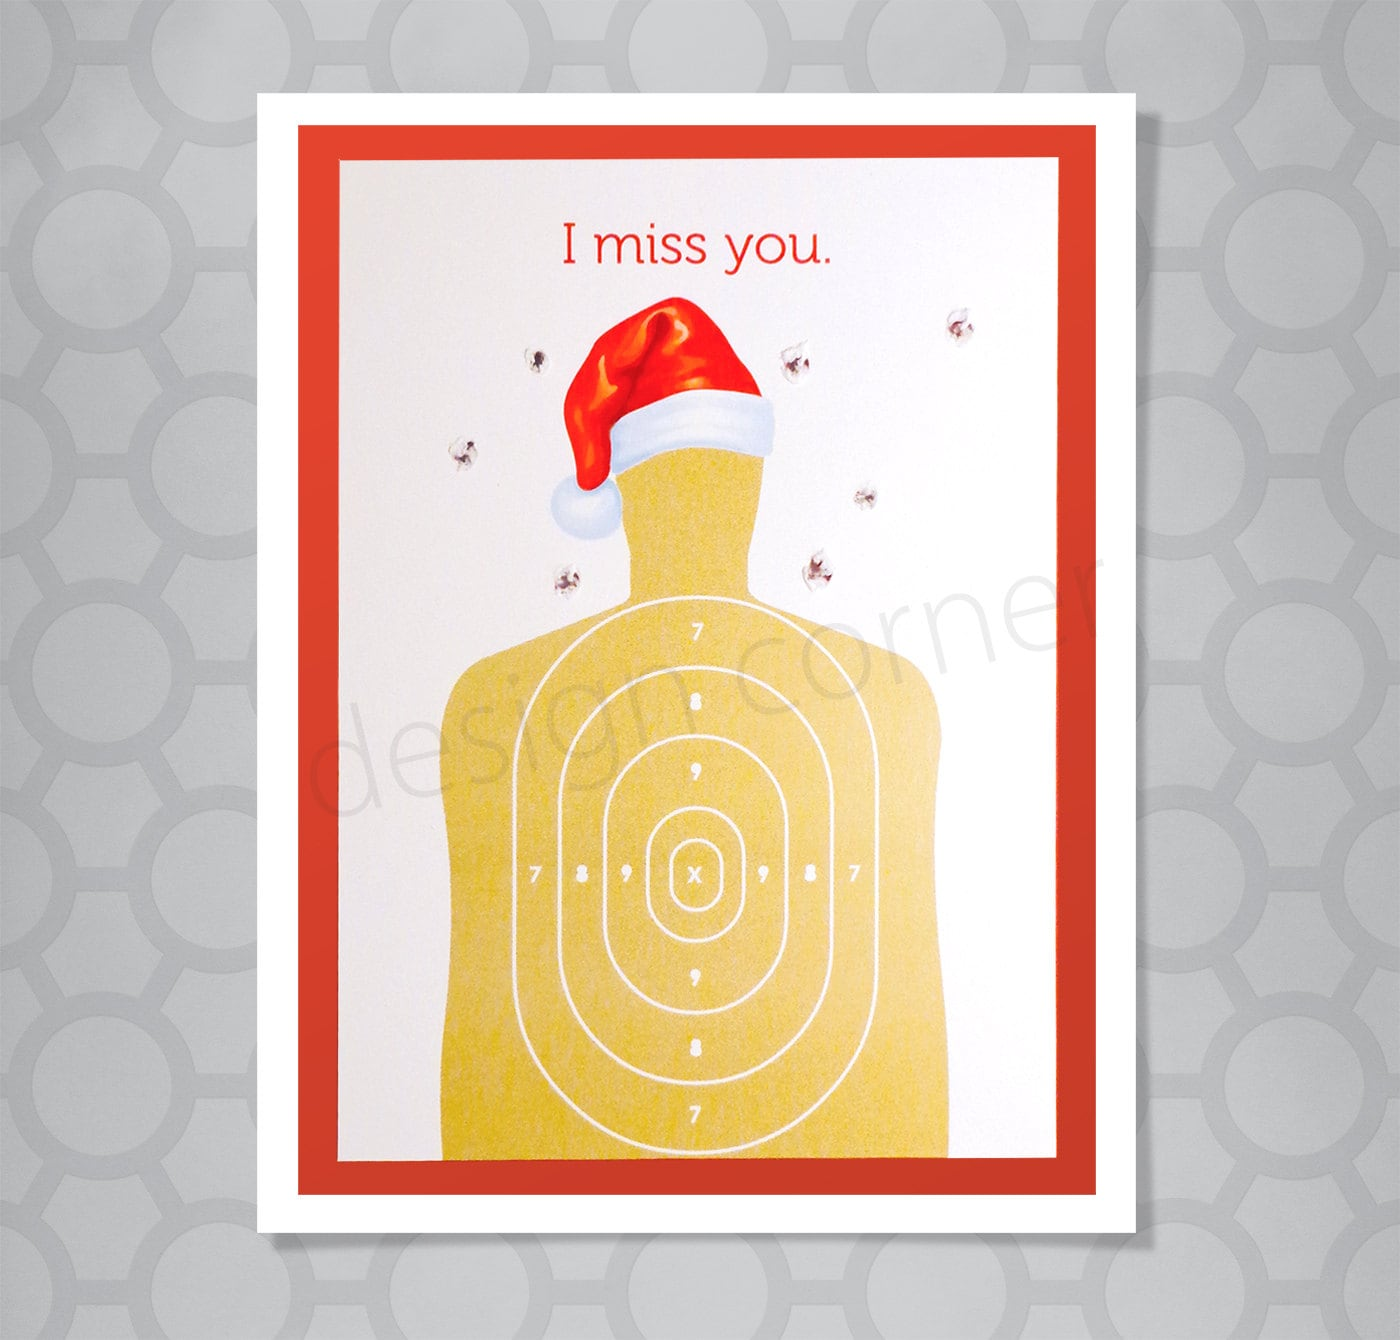 I Miss You Target Funny Illustrated Christmas Card   Etsy